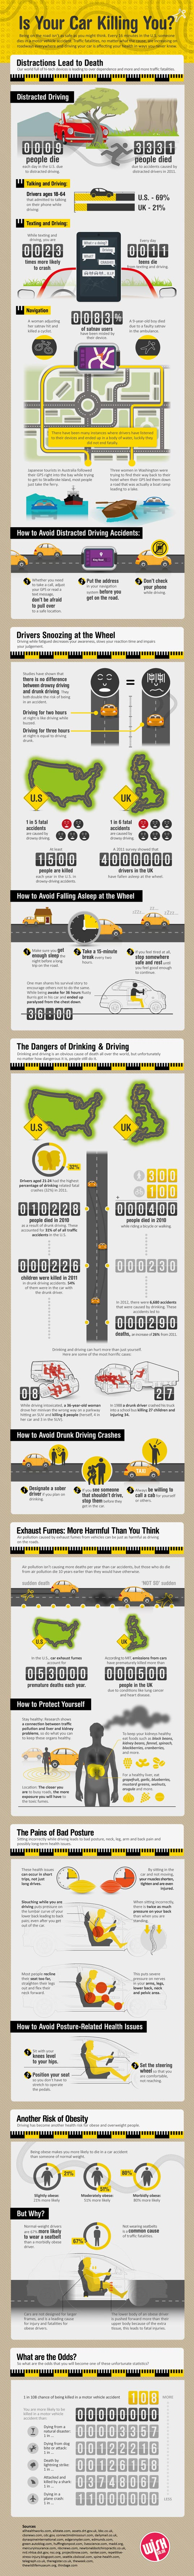 infographic, transportation, green transportation, car deaths, automotive, automobile fatalities, vehicular injuries, sustainable transportation, car accidents